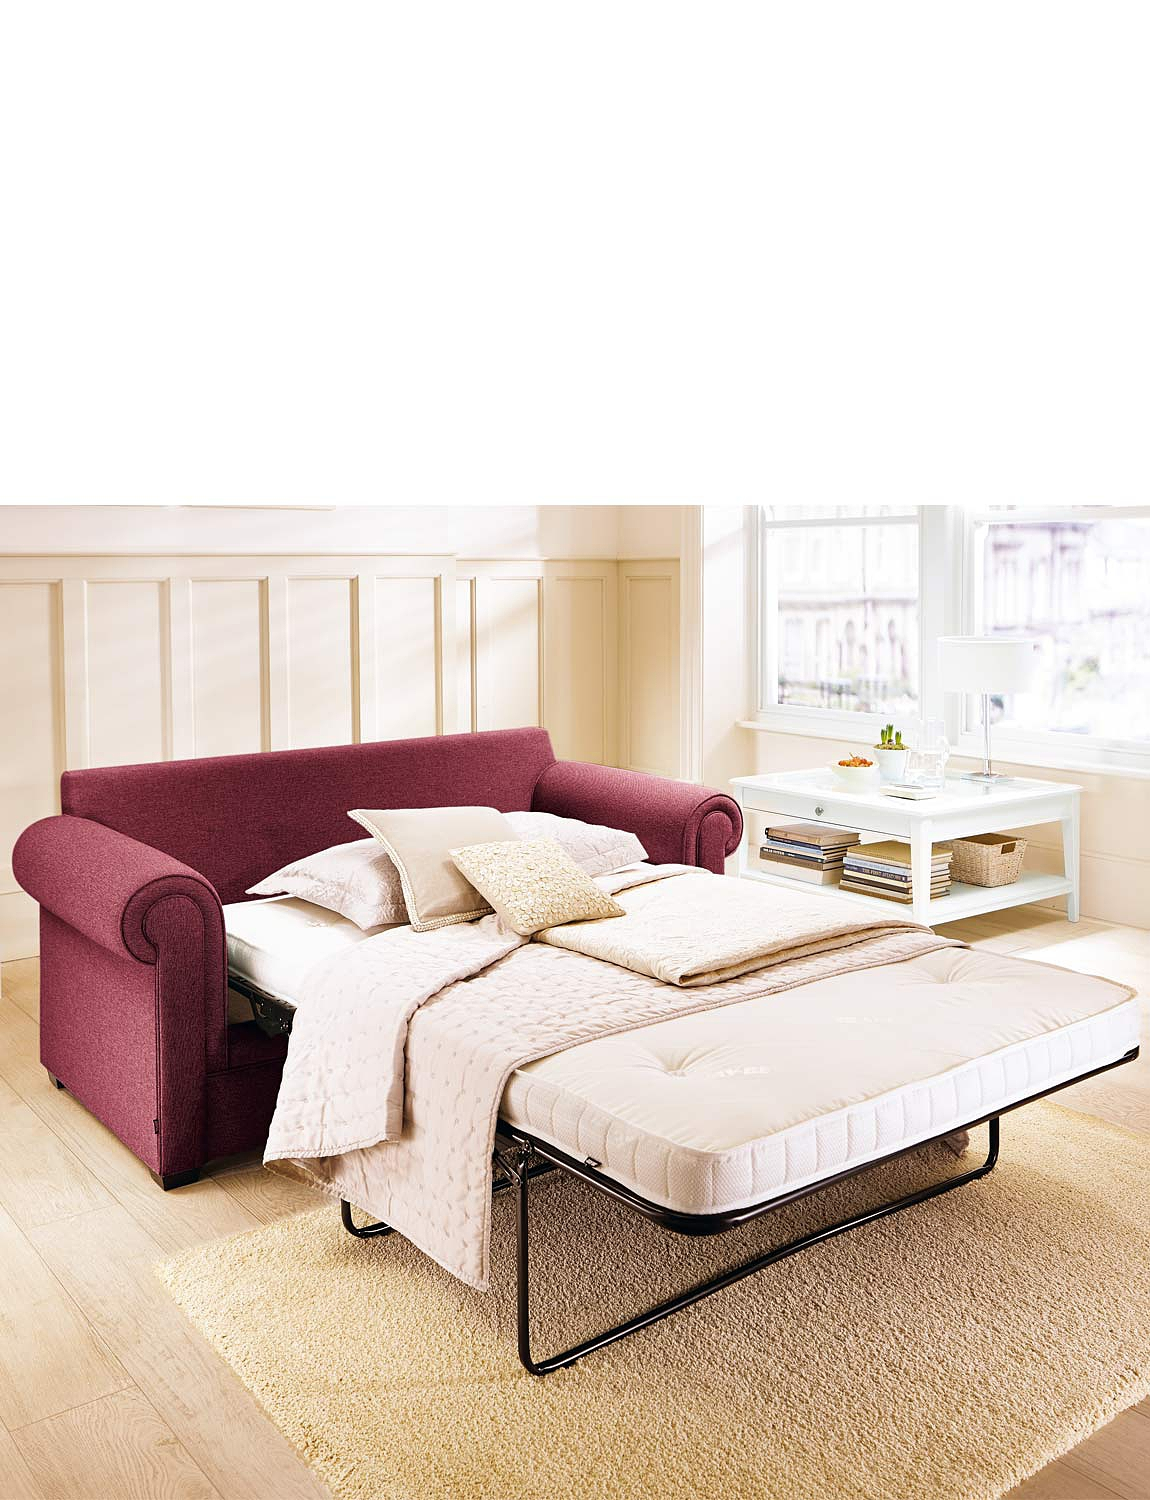 2 seater sofa bed with pocket sprung mattress A0TO9XFR